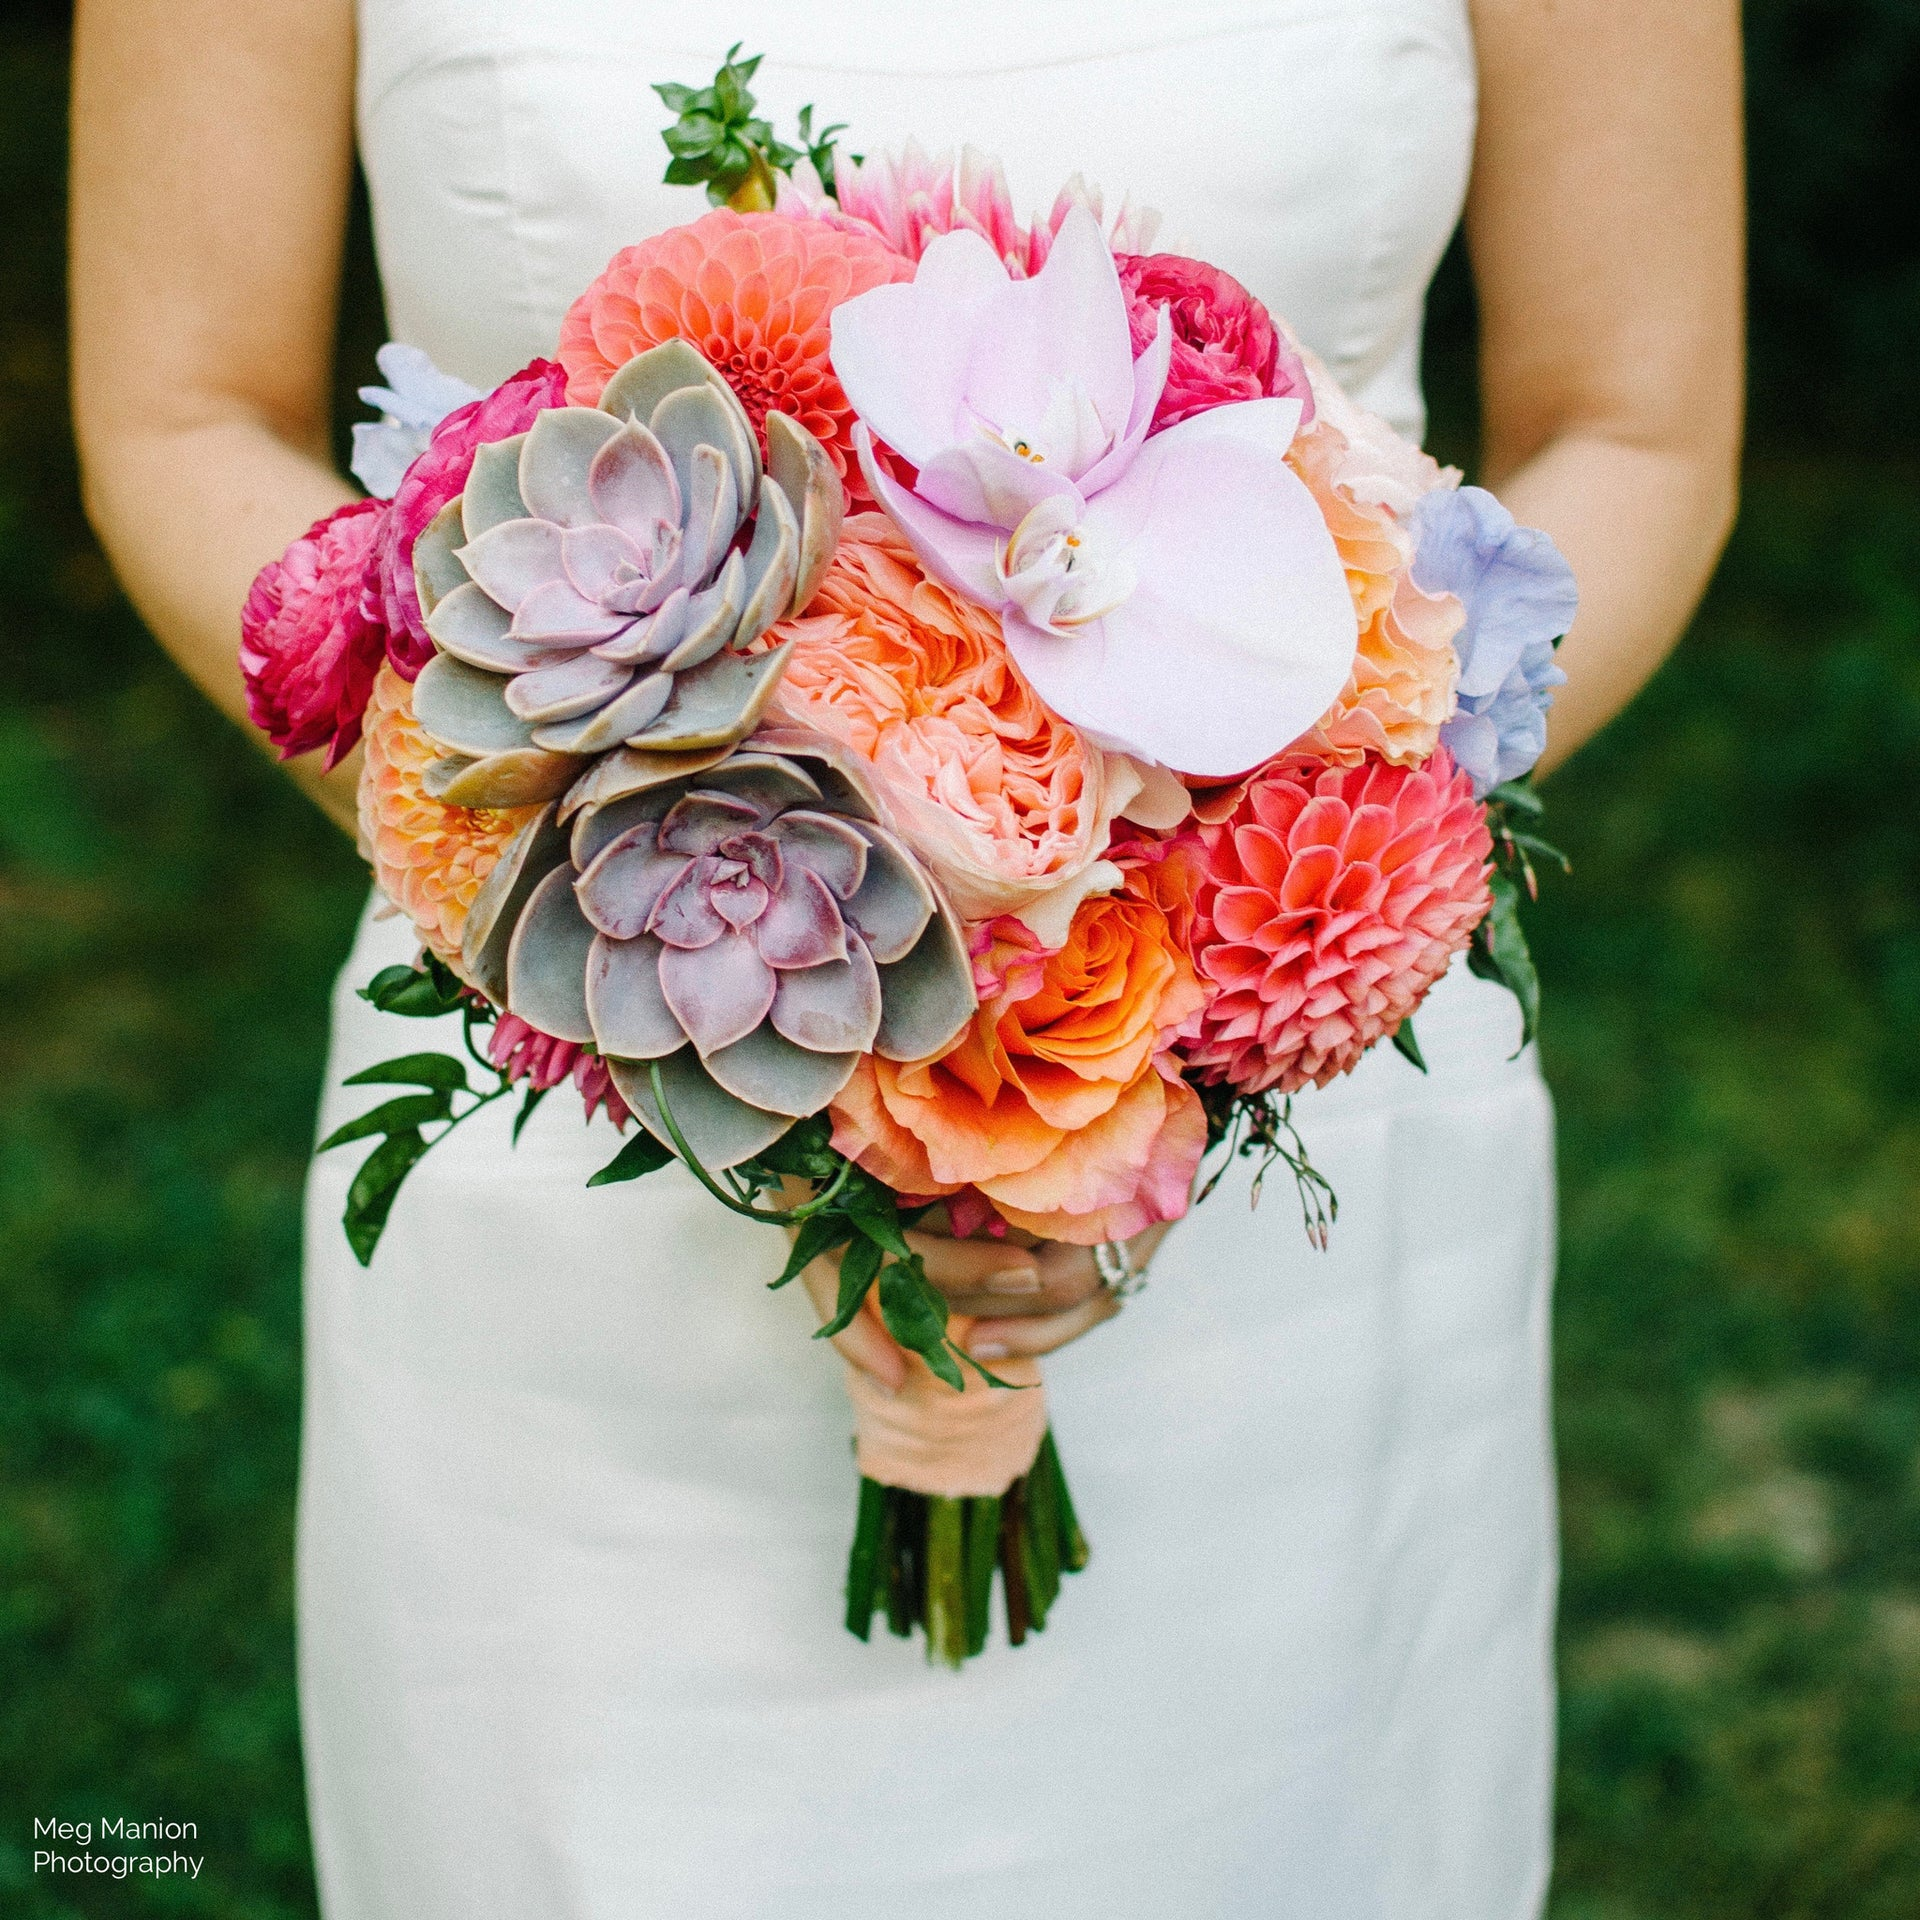 Bride's bouquet with dahlias, succulents, and orchids.